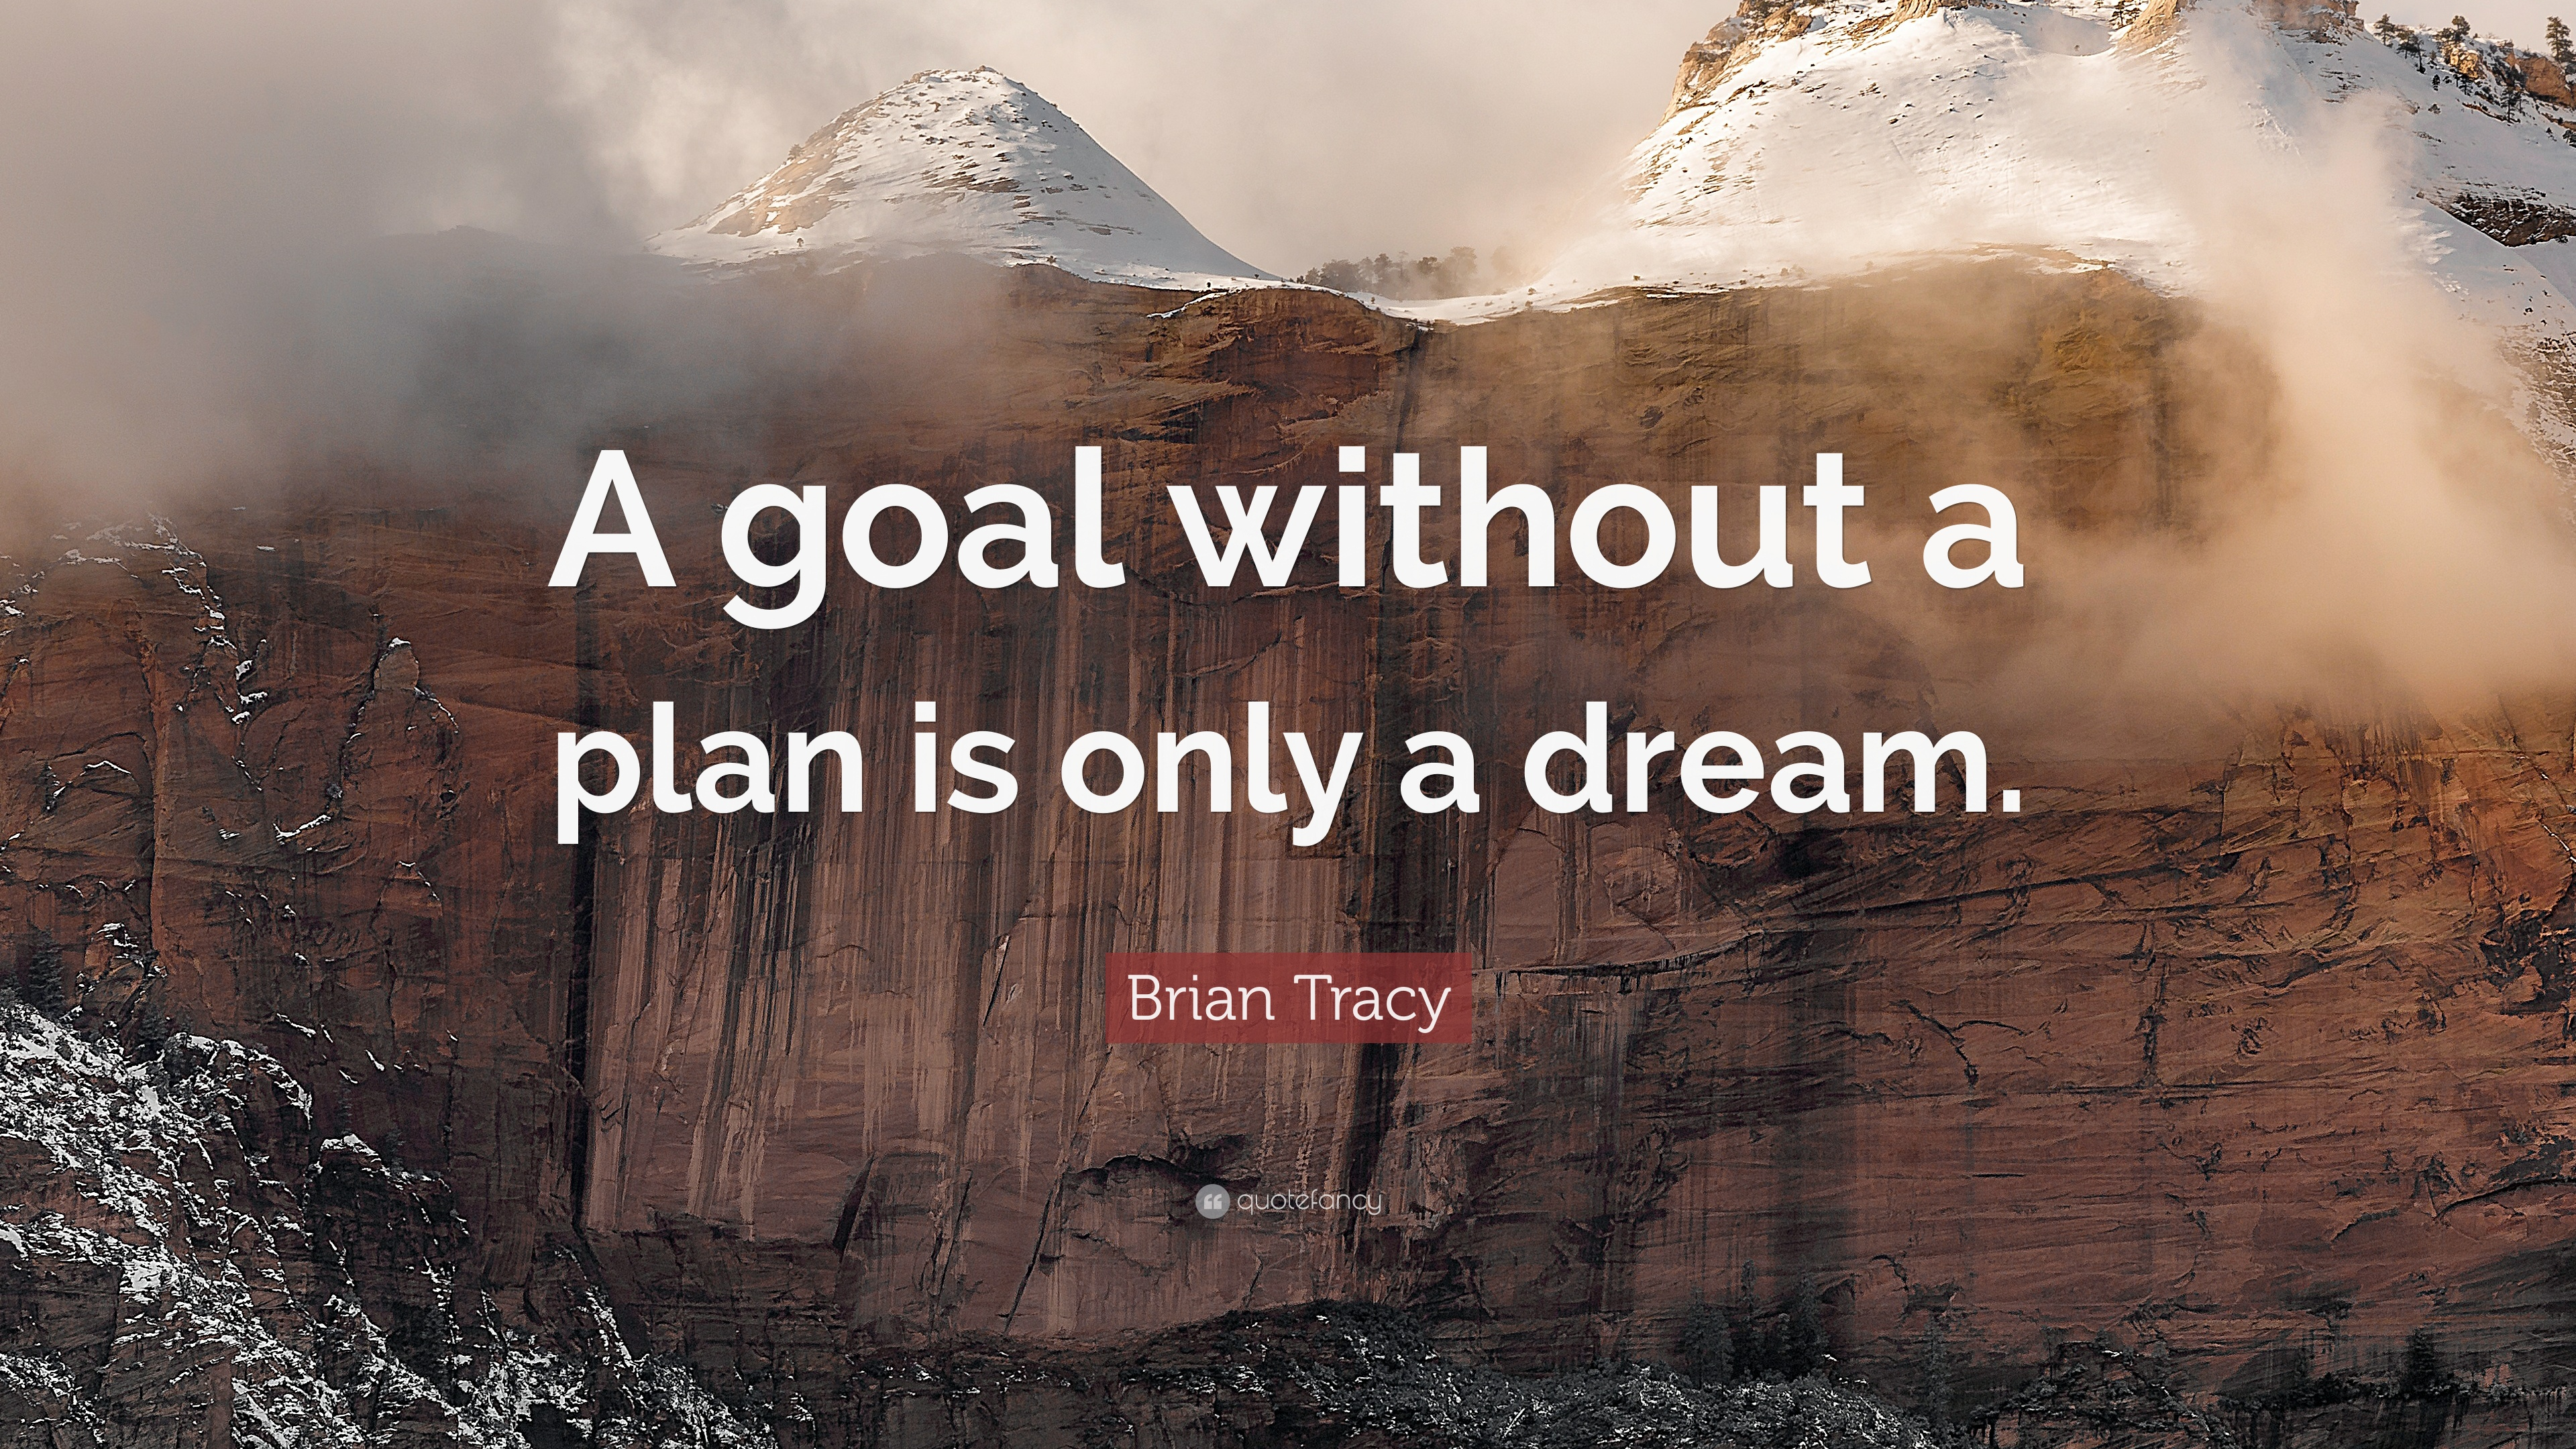 Brian Tracy Quotes Wallpaper Brian Tracy Quote A Goal Without A Plan Is Only A Dream